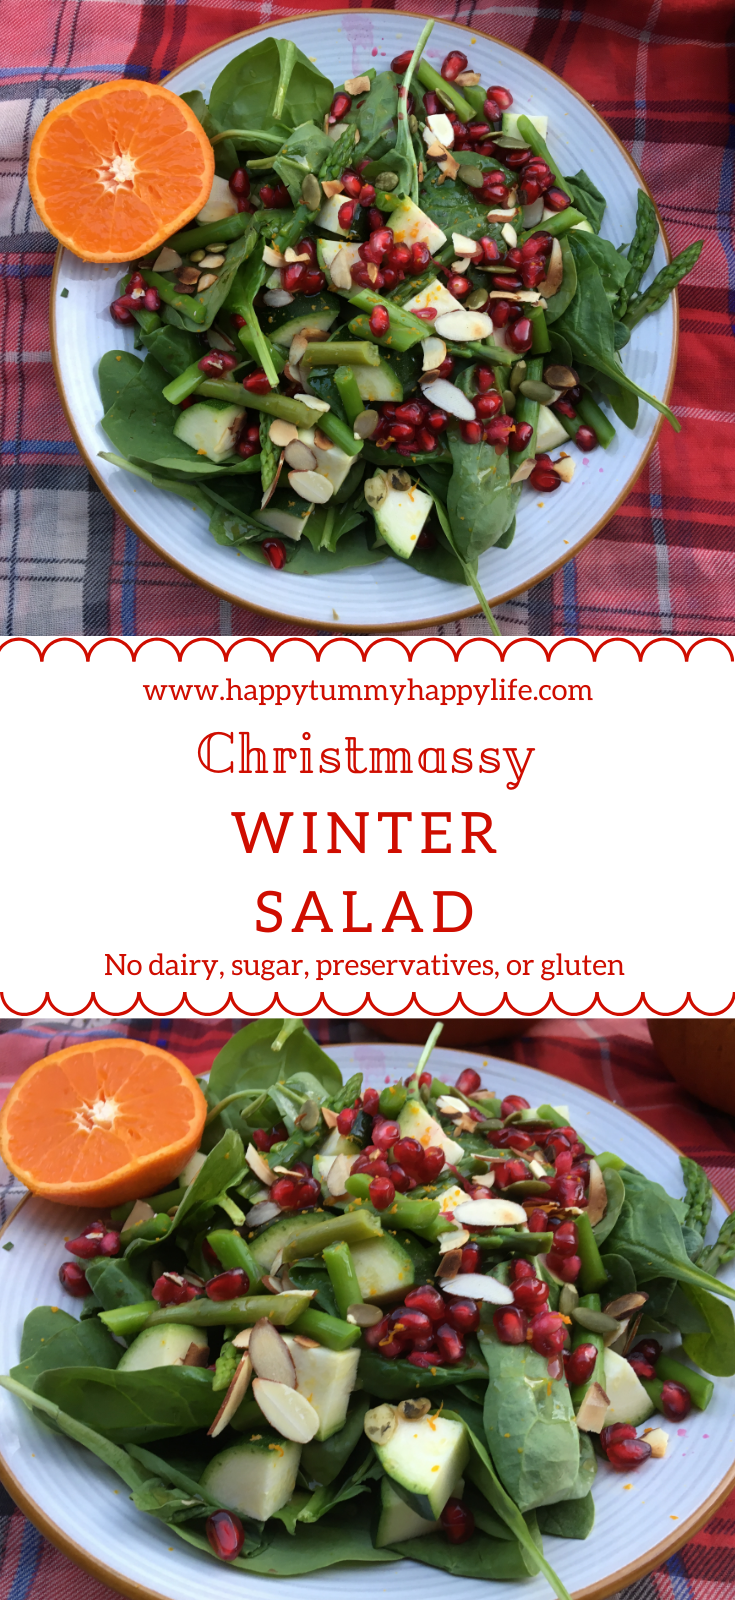 Winter Salad, Christmas Recipes, Thanksgiving Recipes, Quick and Easy Recipes, Fall Salad, Gluten Free, Dairy Free, Vegan, Healthy Sides, Preservative Free, No Added Sugar